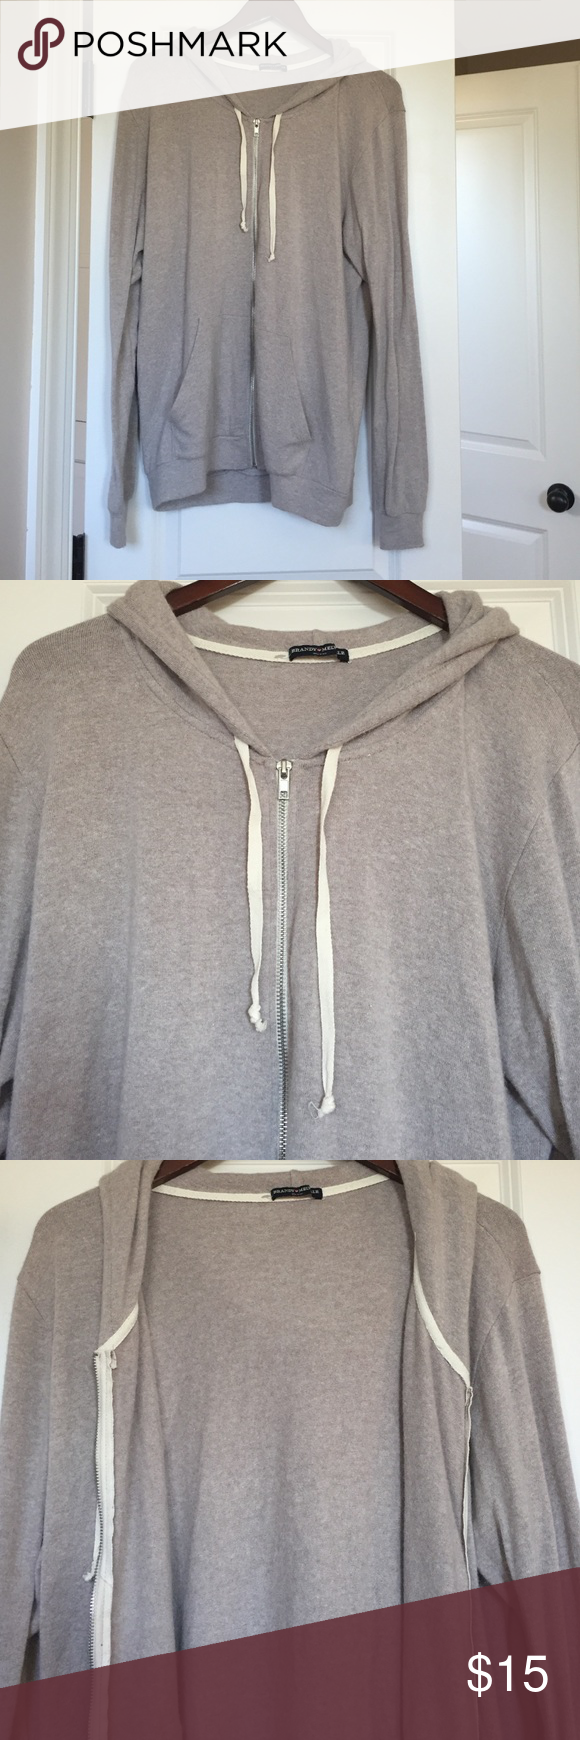 Brandy Melville Oversized soft hoodie NWOT Brandy Melville oversized gray zip up hoodie that's super super soft and comfy, perfect condition, never worn, comfy hood! Brandy Melville Tops Sweatshirts & Hoodies